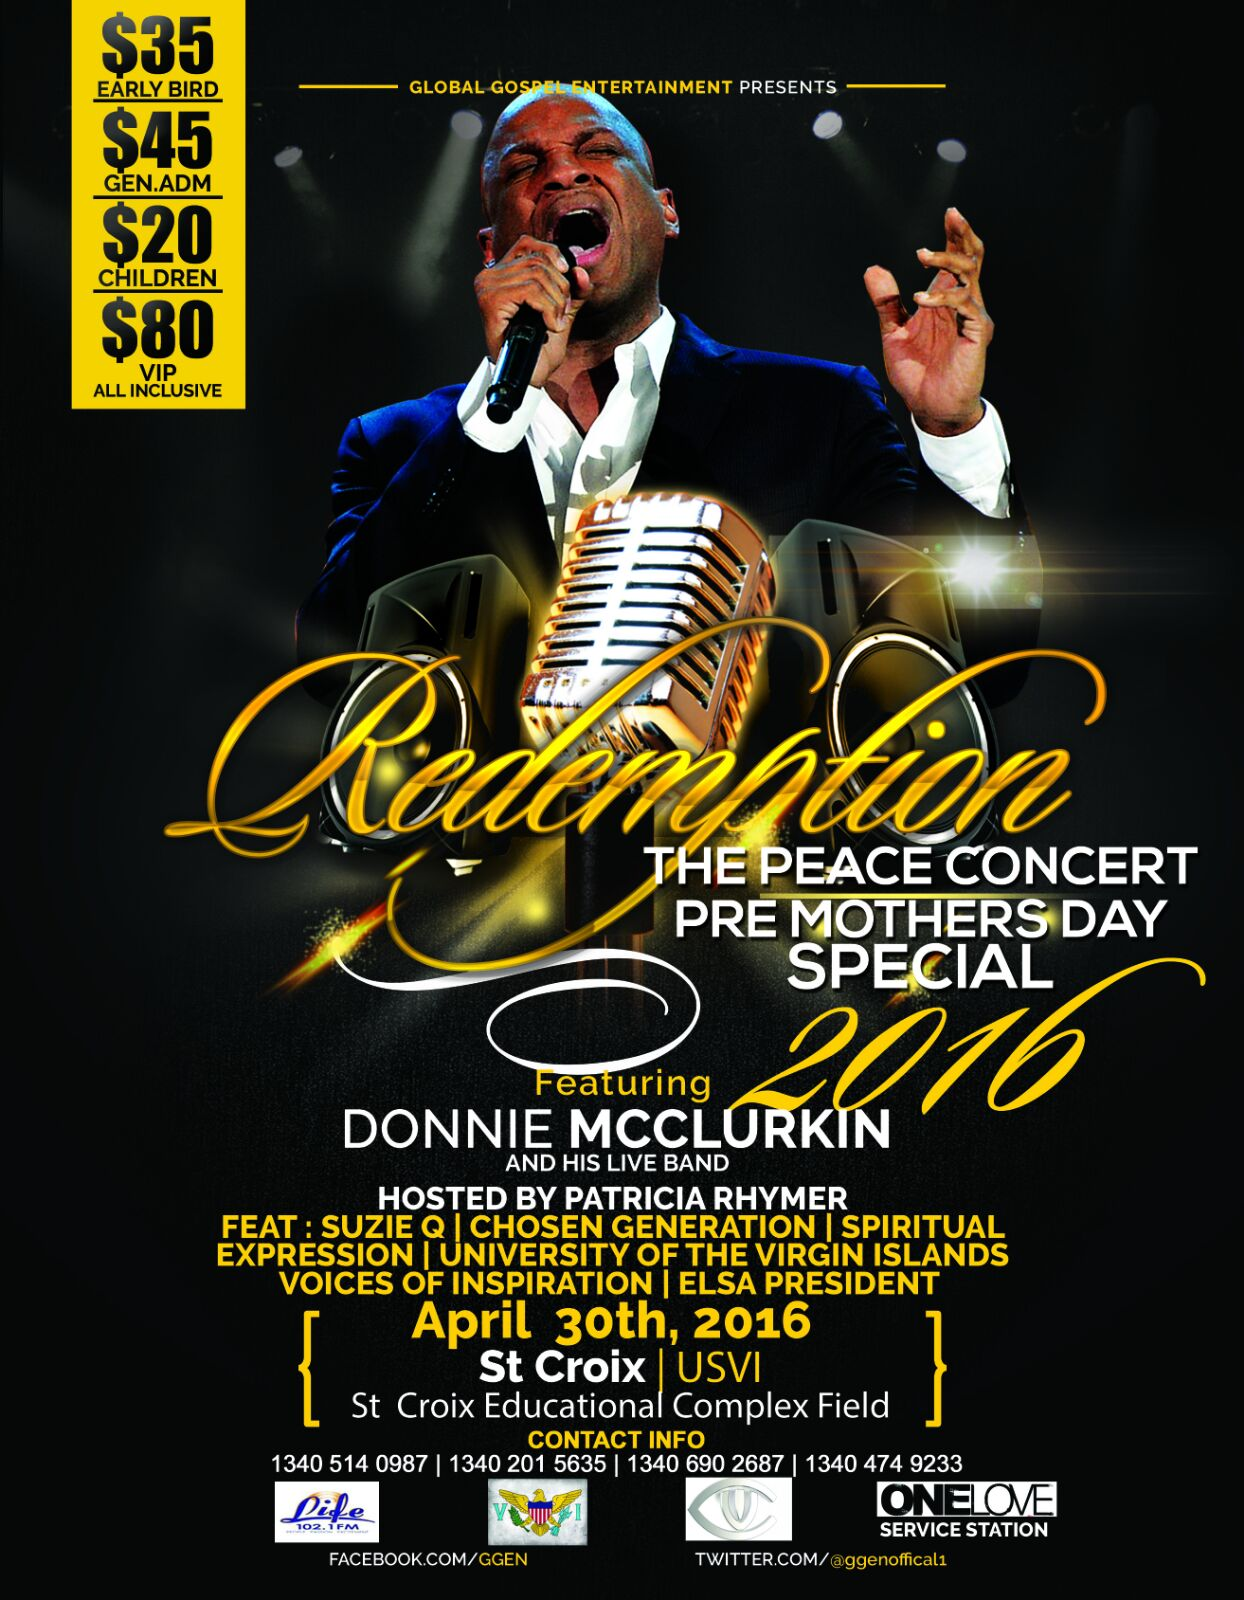 REDEMPTION PEACE CONCERT MOTHER'S DAY SPECIAL